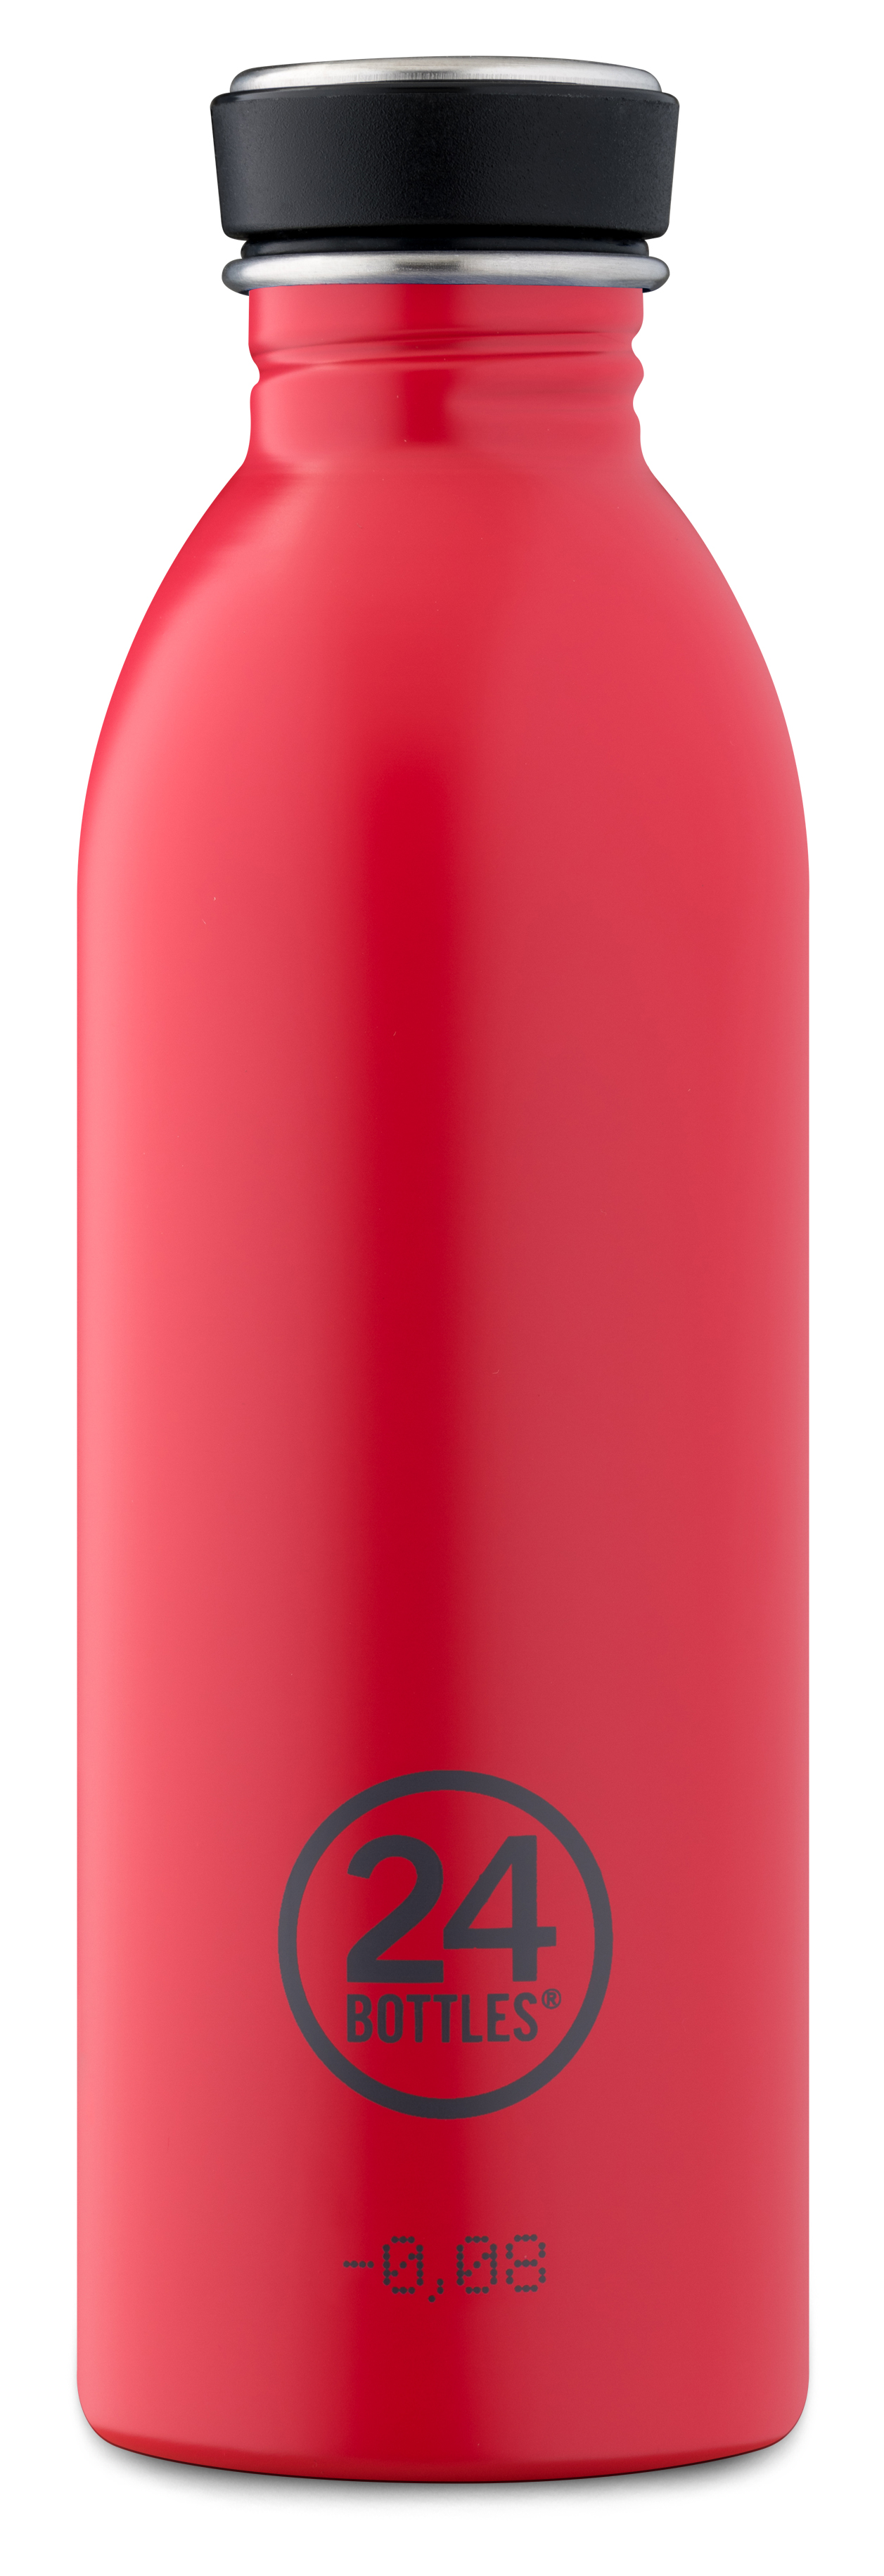 Hot Red Urban 500ml I